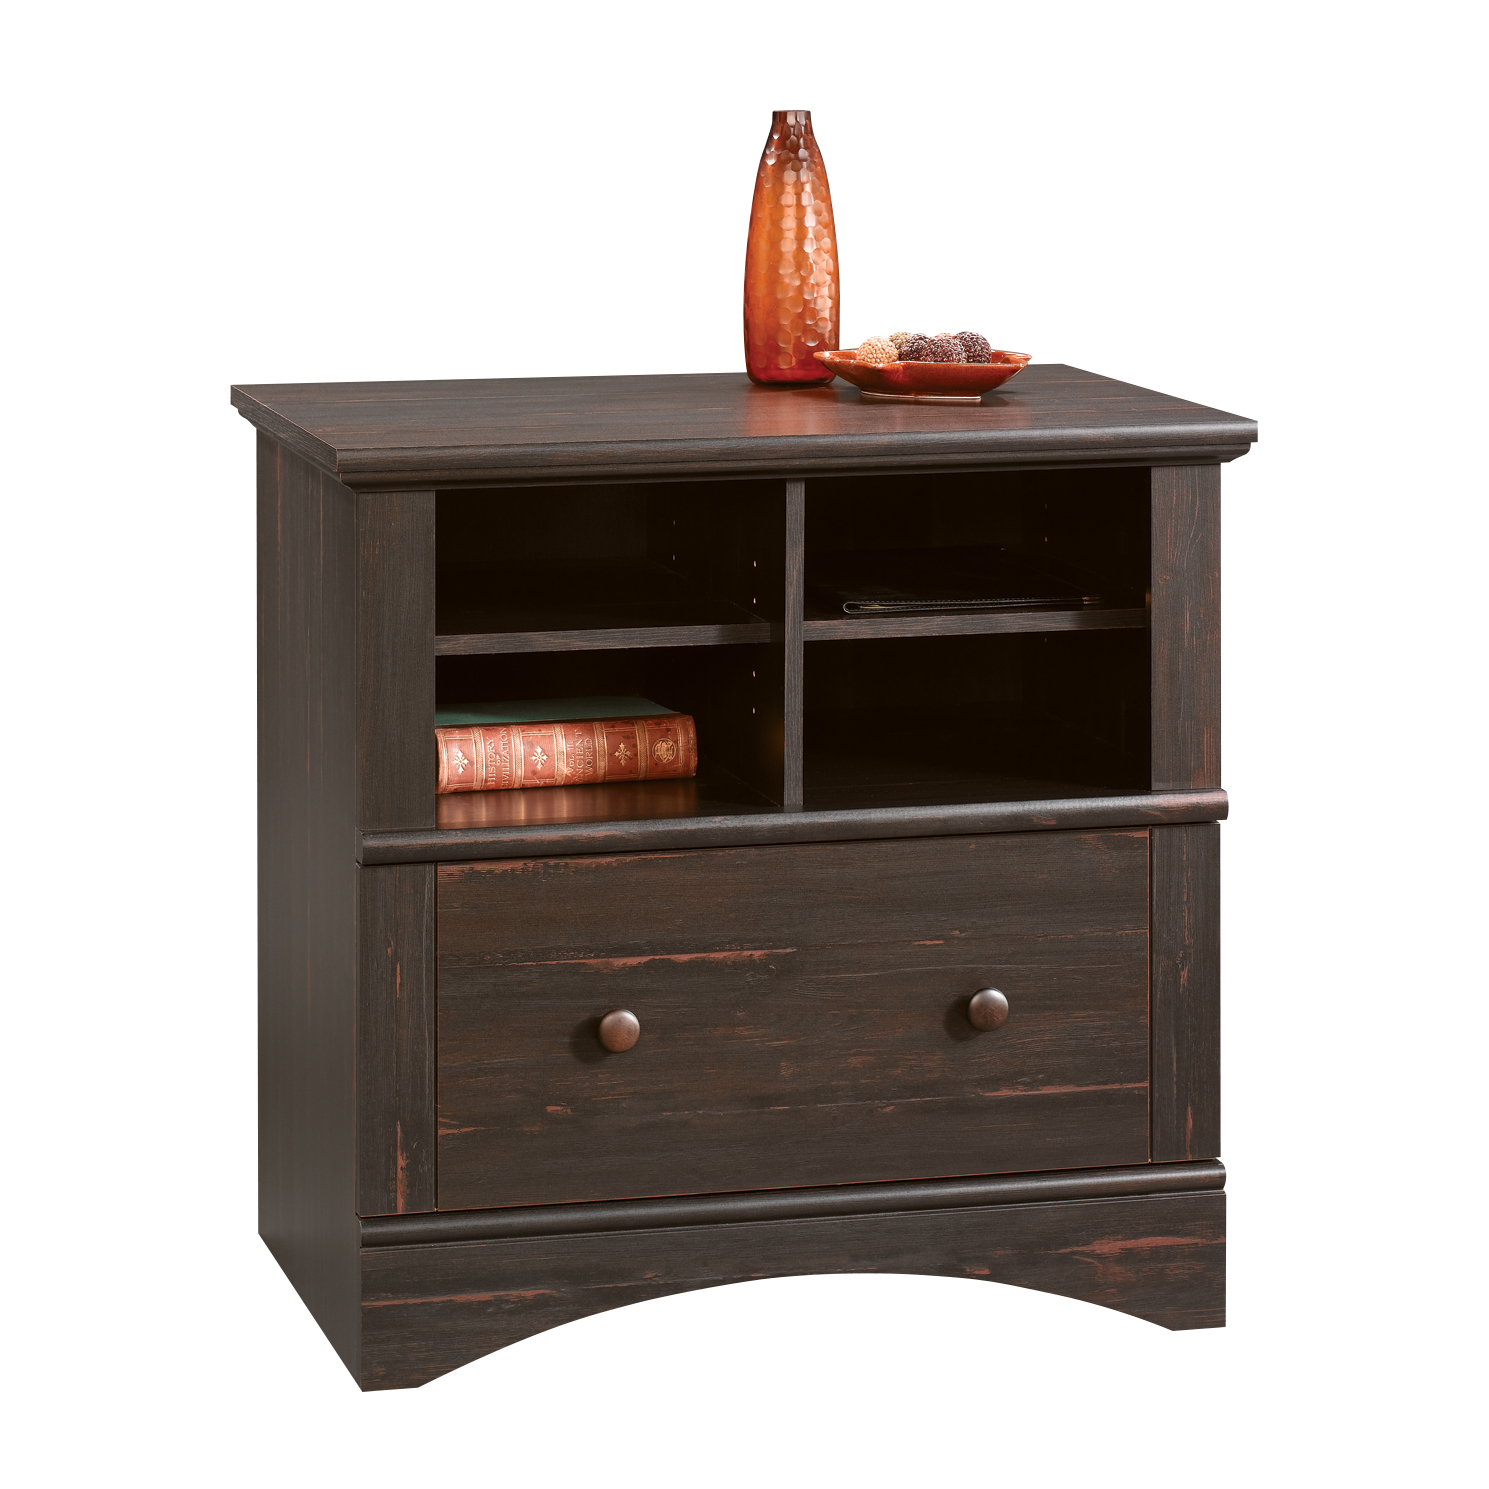 Sauder Harbor View Lateral File with Lock, Antiqued Paint Finish